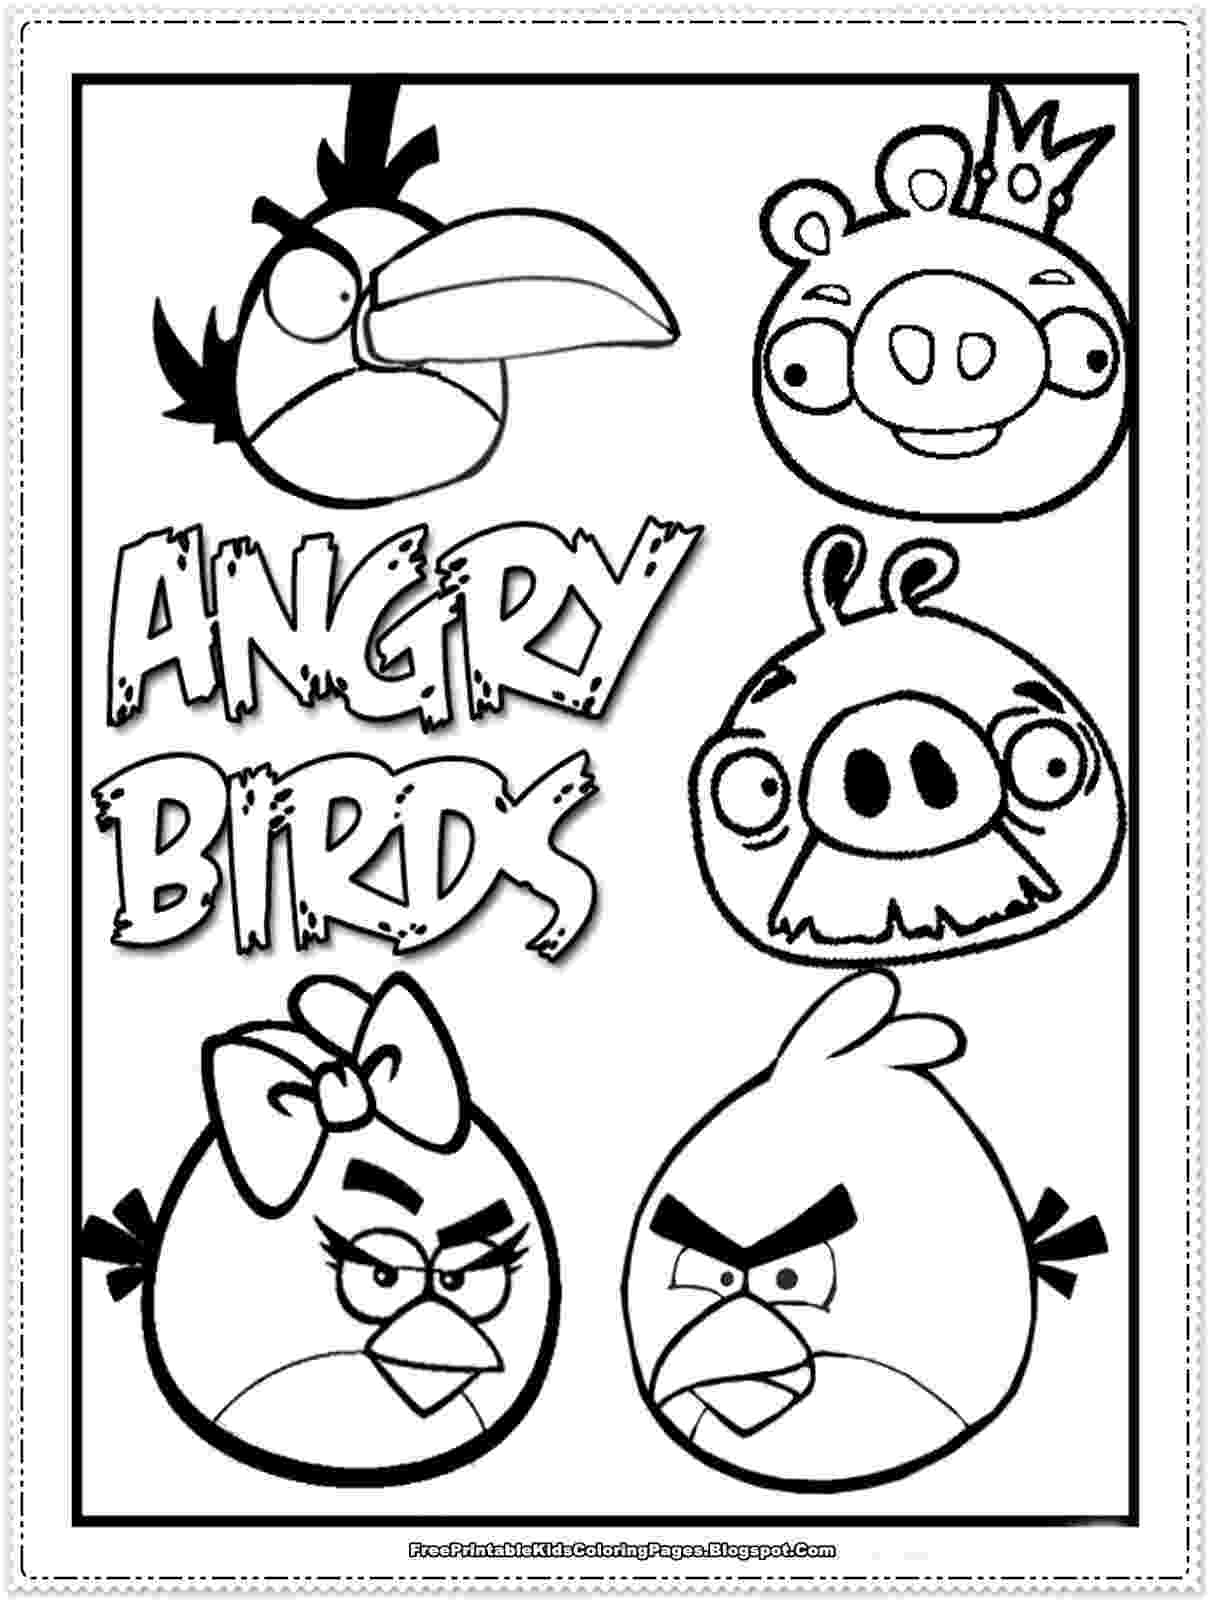 bird coloring pages to print birds coloring page happy family art print bird pages to coloring